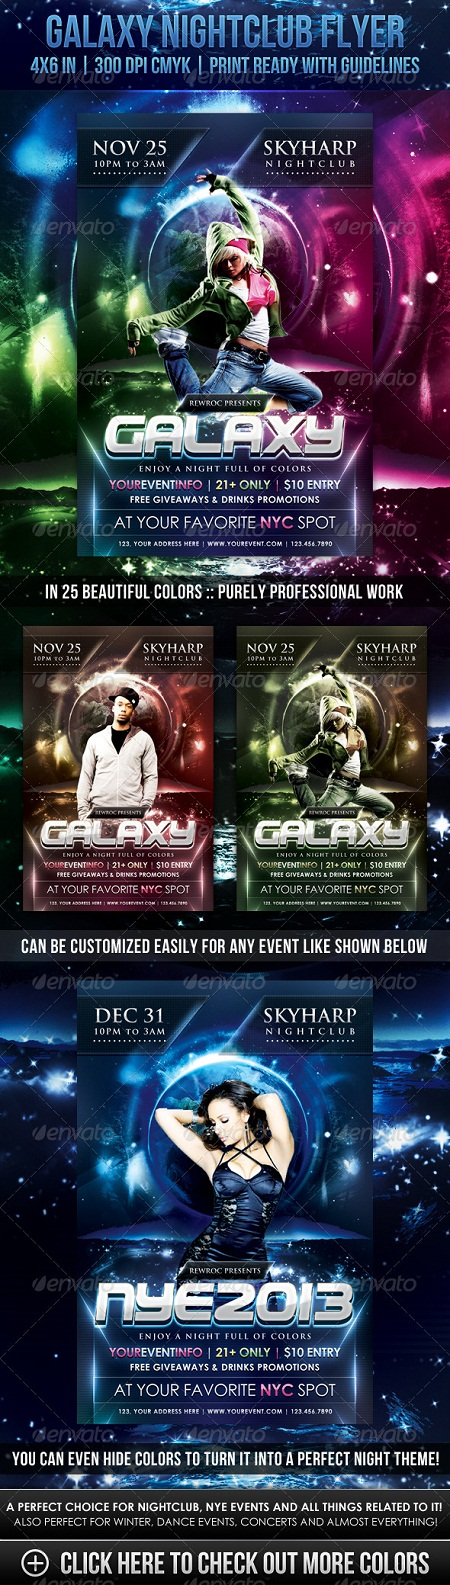 GraphicRiver - Galaxy Nightclub Flyer